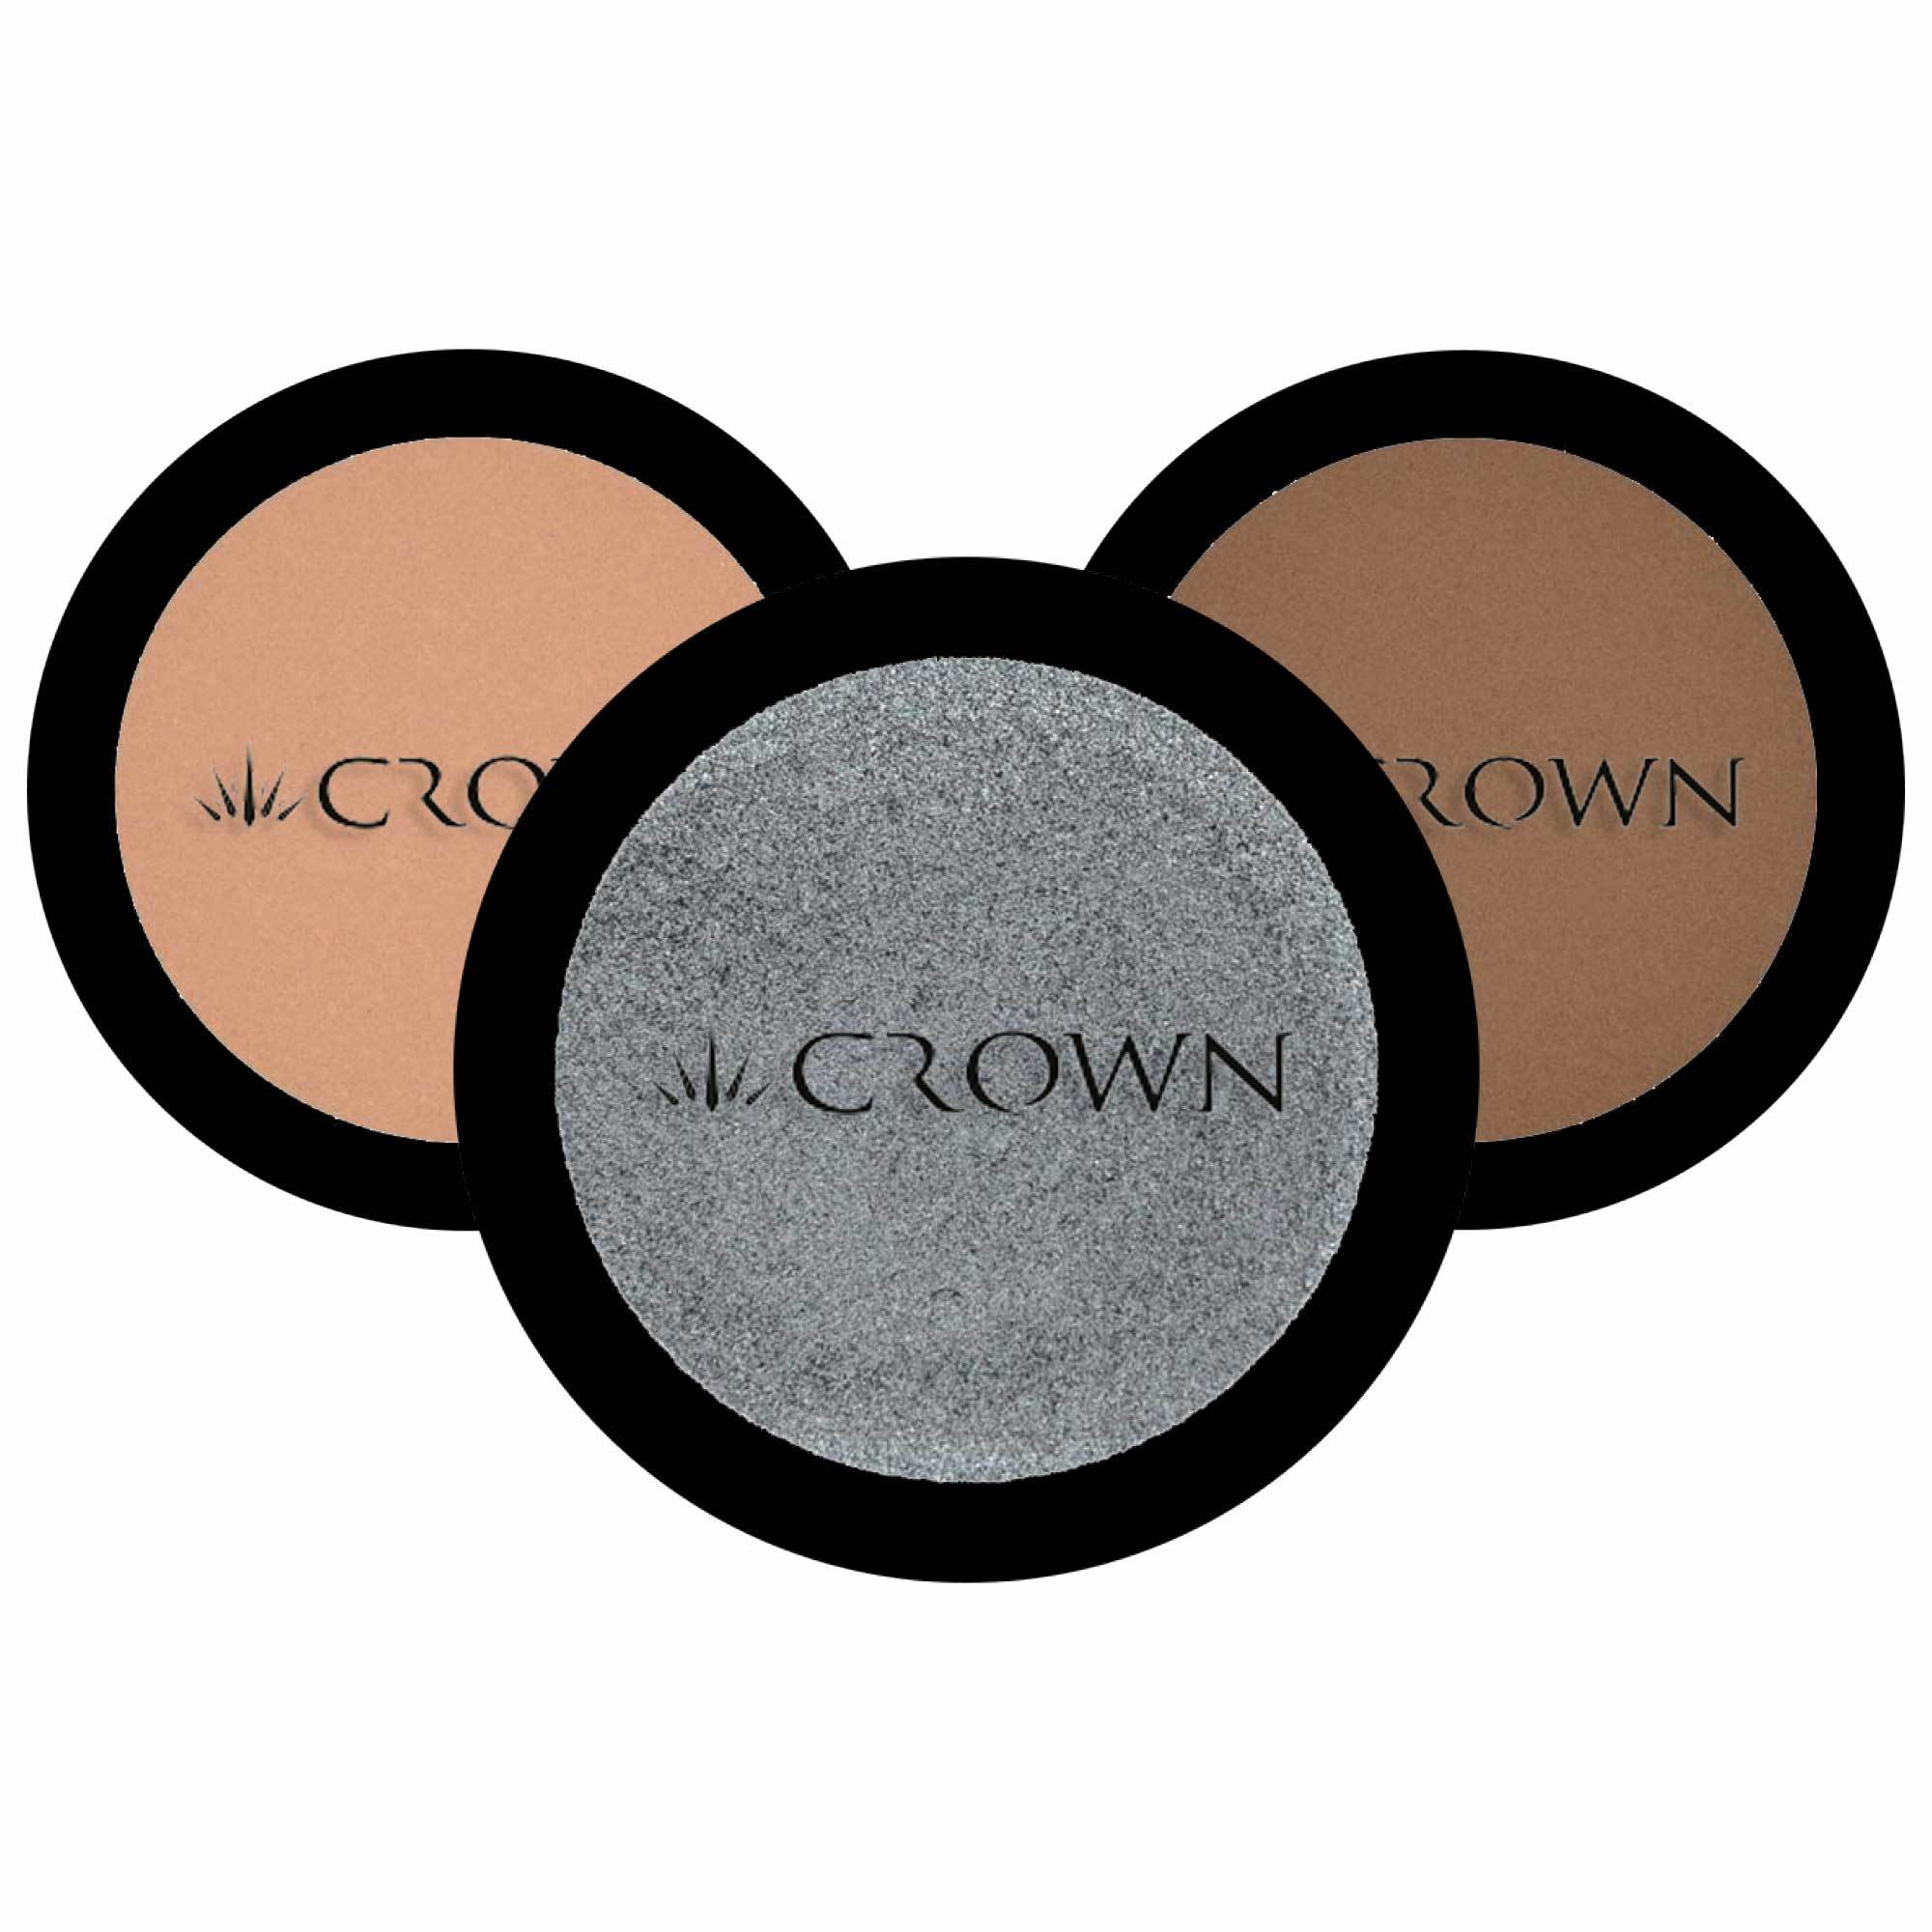 Crown Solo Eyeshadow at Red Carpet FX